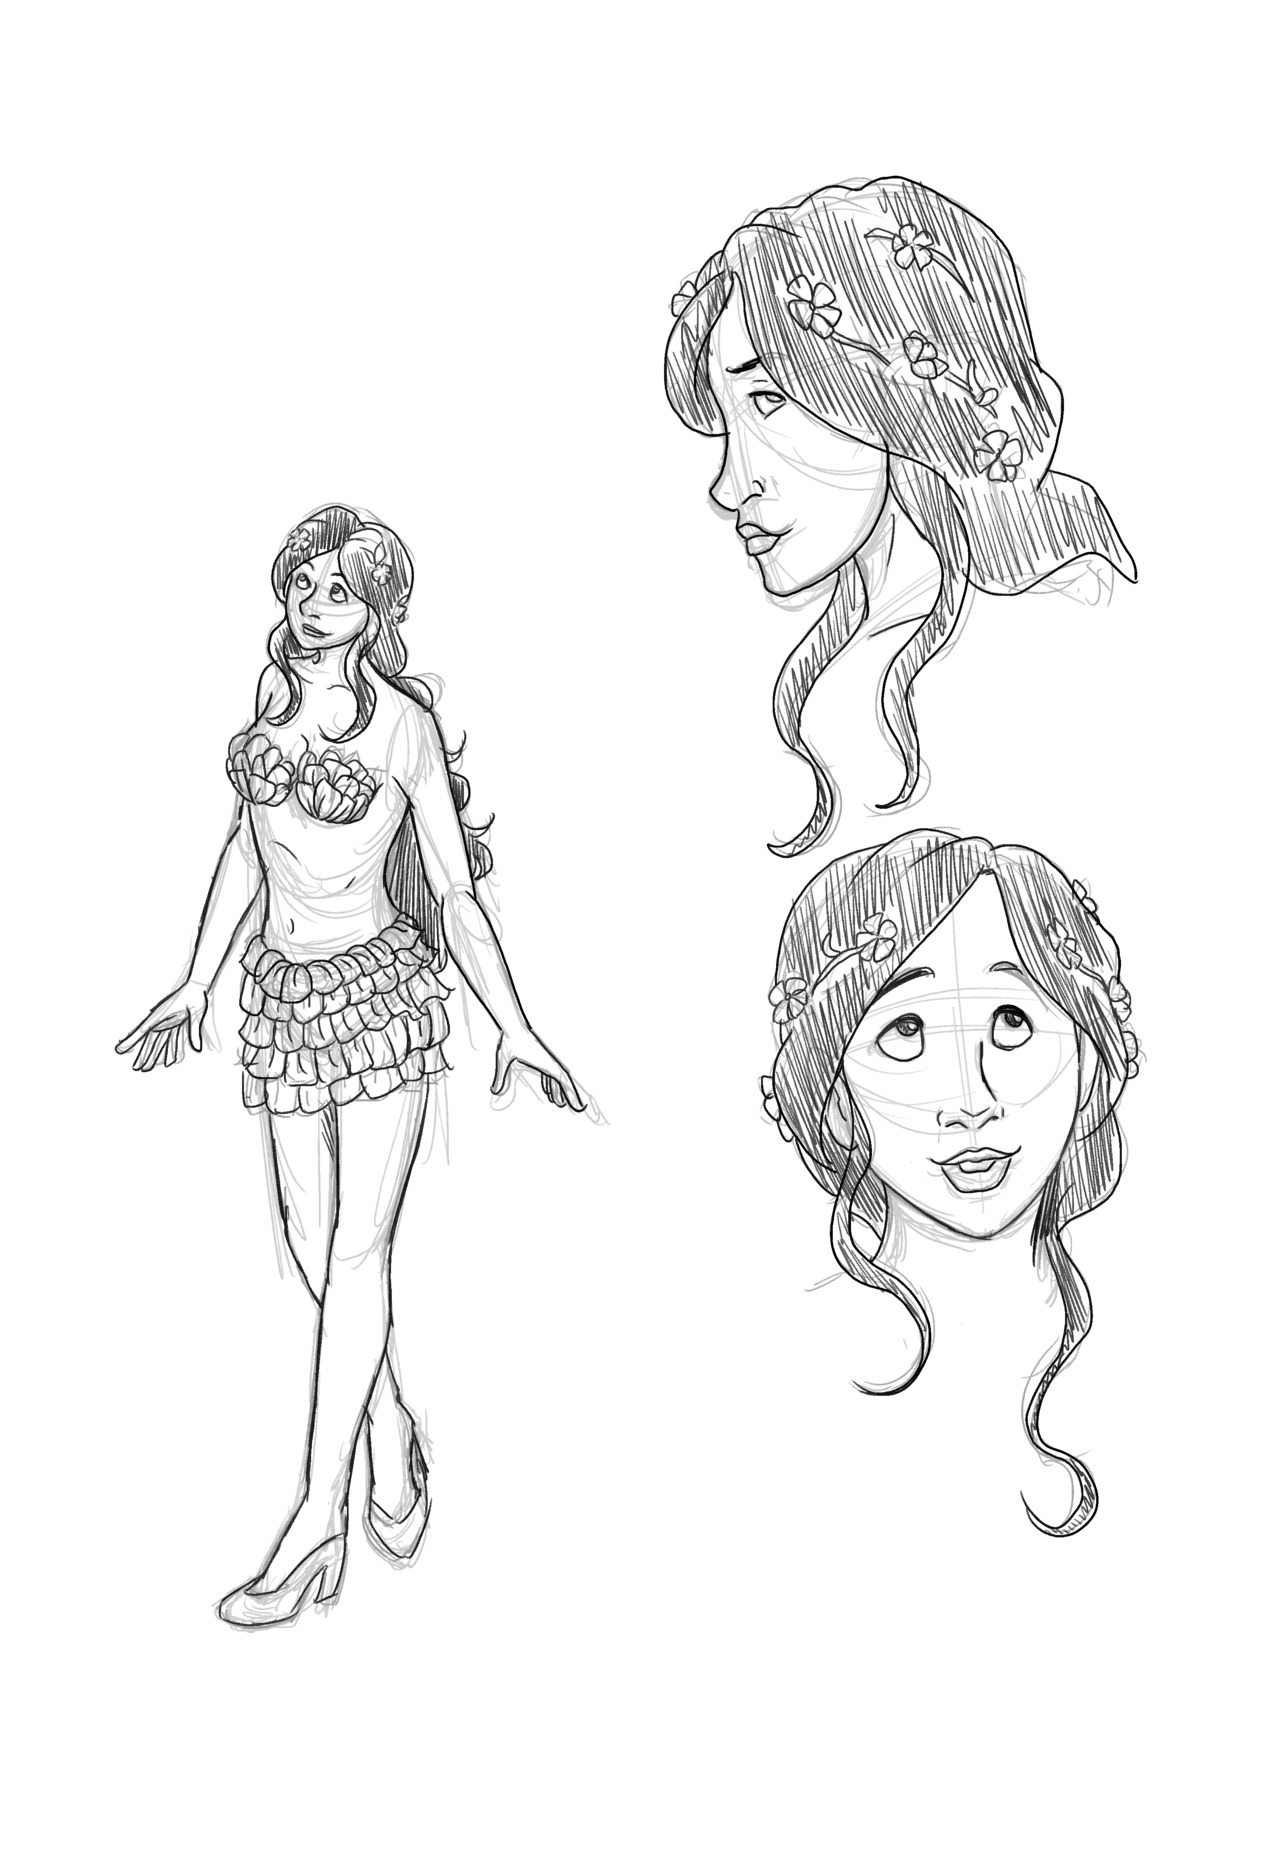 kelmcdonald:  Today I drew Justine for my Dresden character of the day. She is described as attractive and sweet looking. She like her date Thomas has used the costume party as an excuse to be mostly naked. So her outfit is a short skirt made of flower peddles and she has flower peddles covering her breasts. However, it doesn't say if those peddles are attached making like a tube top, so I assumed they were just pasties.